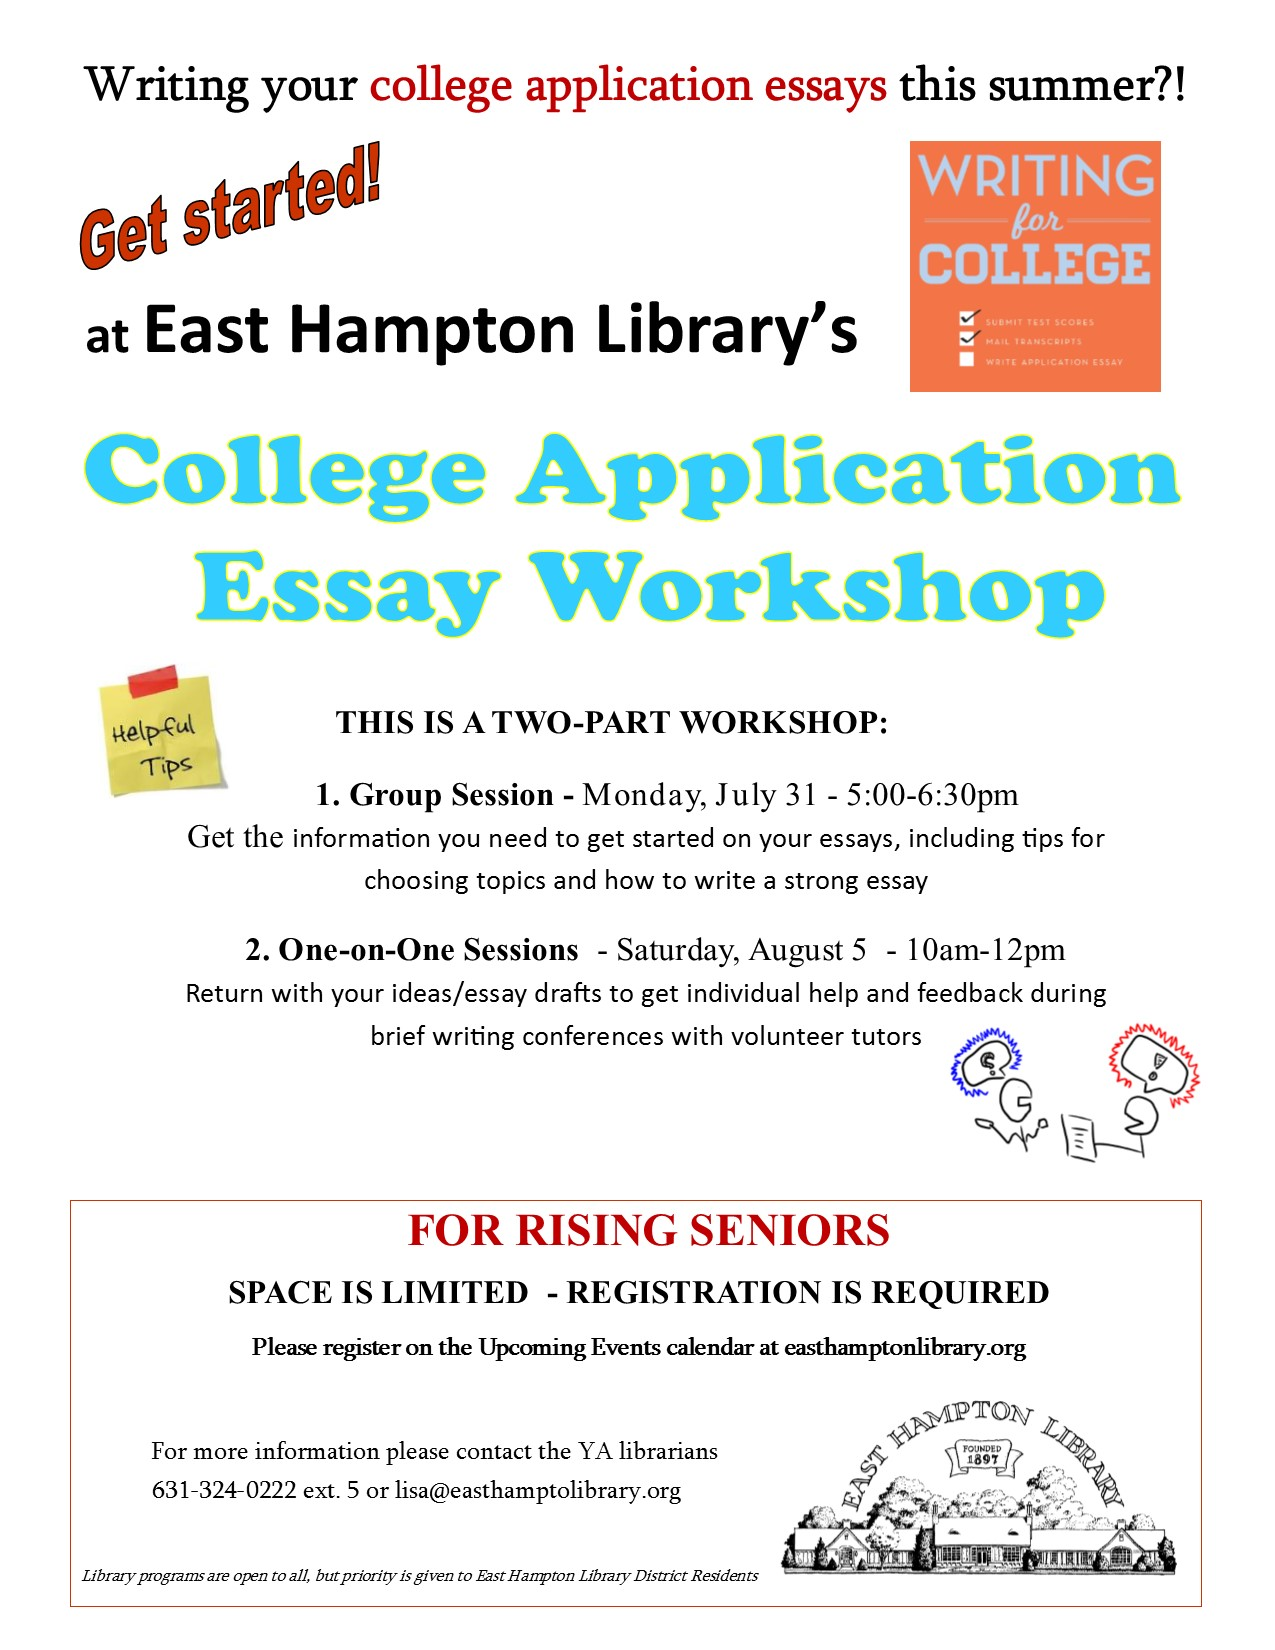 Student College Essay Flyer   East Hampton Library Student College Essay Flyer  Photosynthesis Essay also My School Essay In English  Research Report Wrting Companies